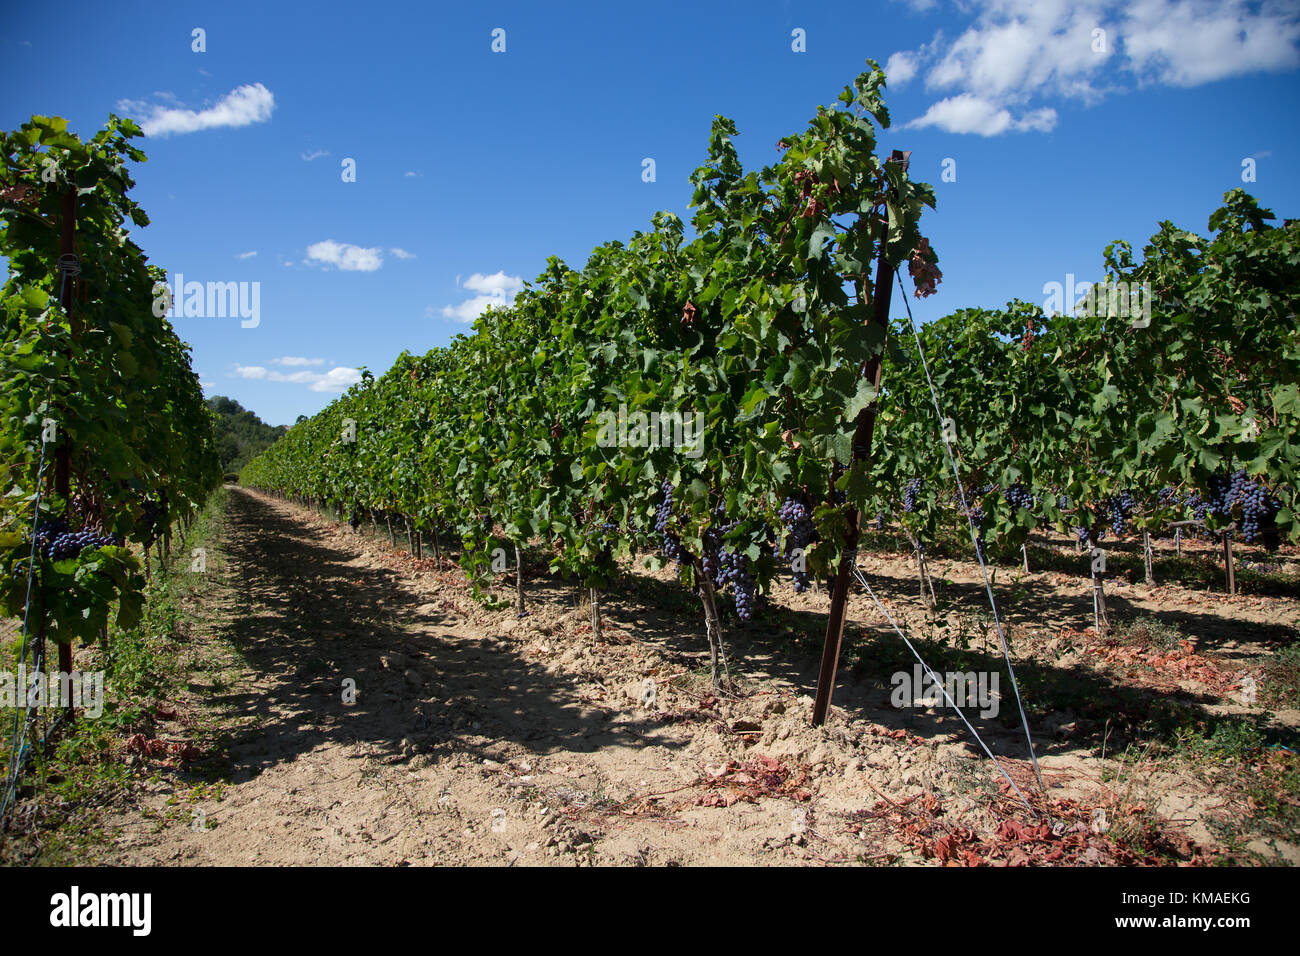 French vines in sunshine - Stock Image